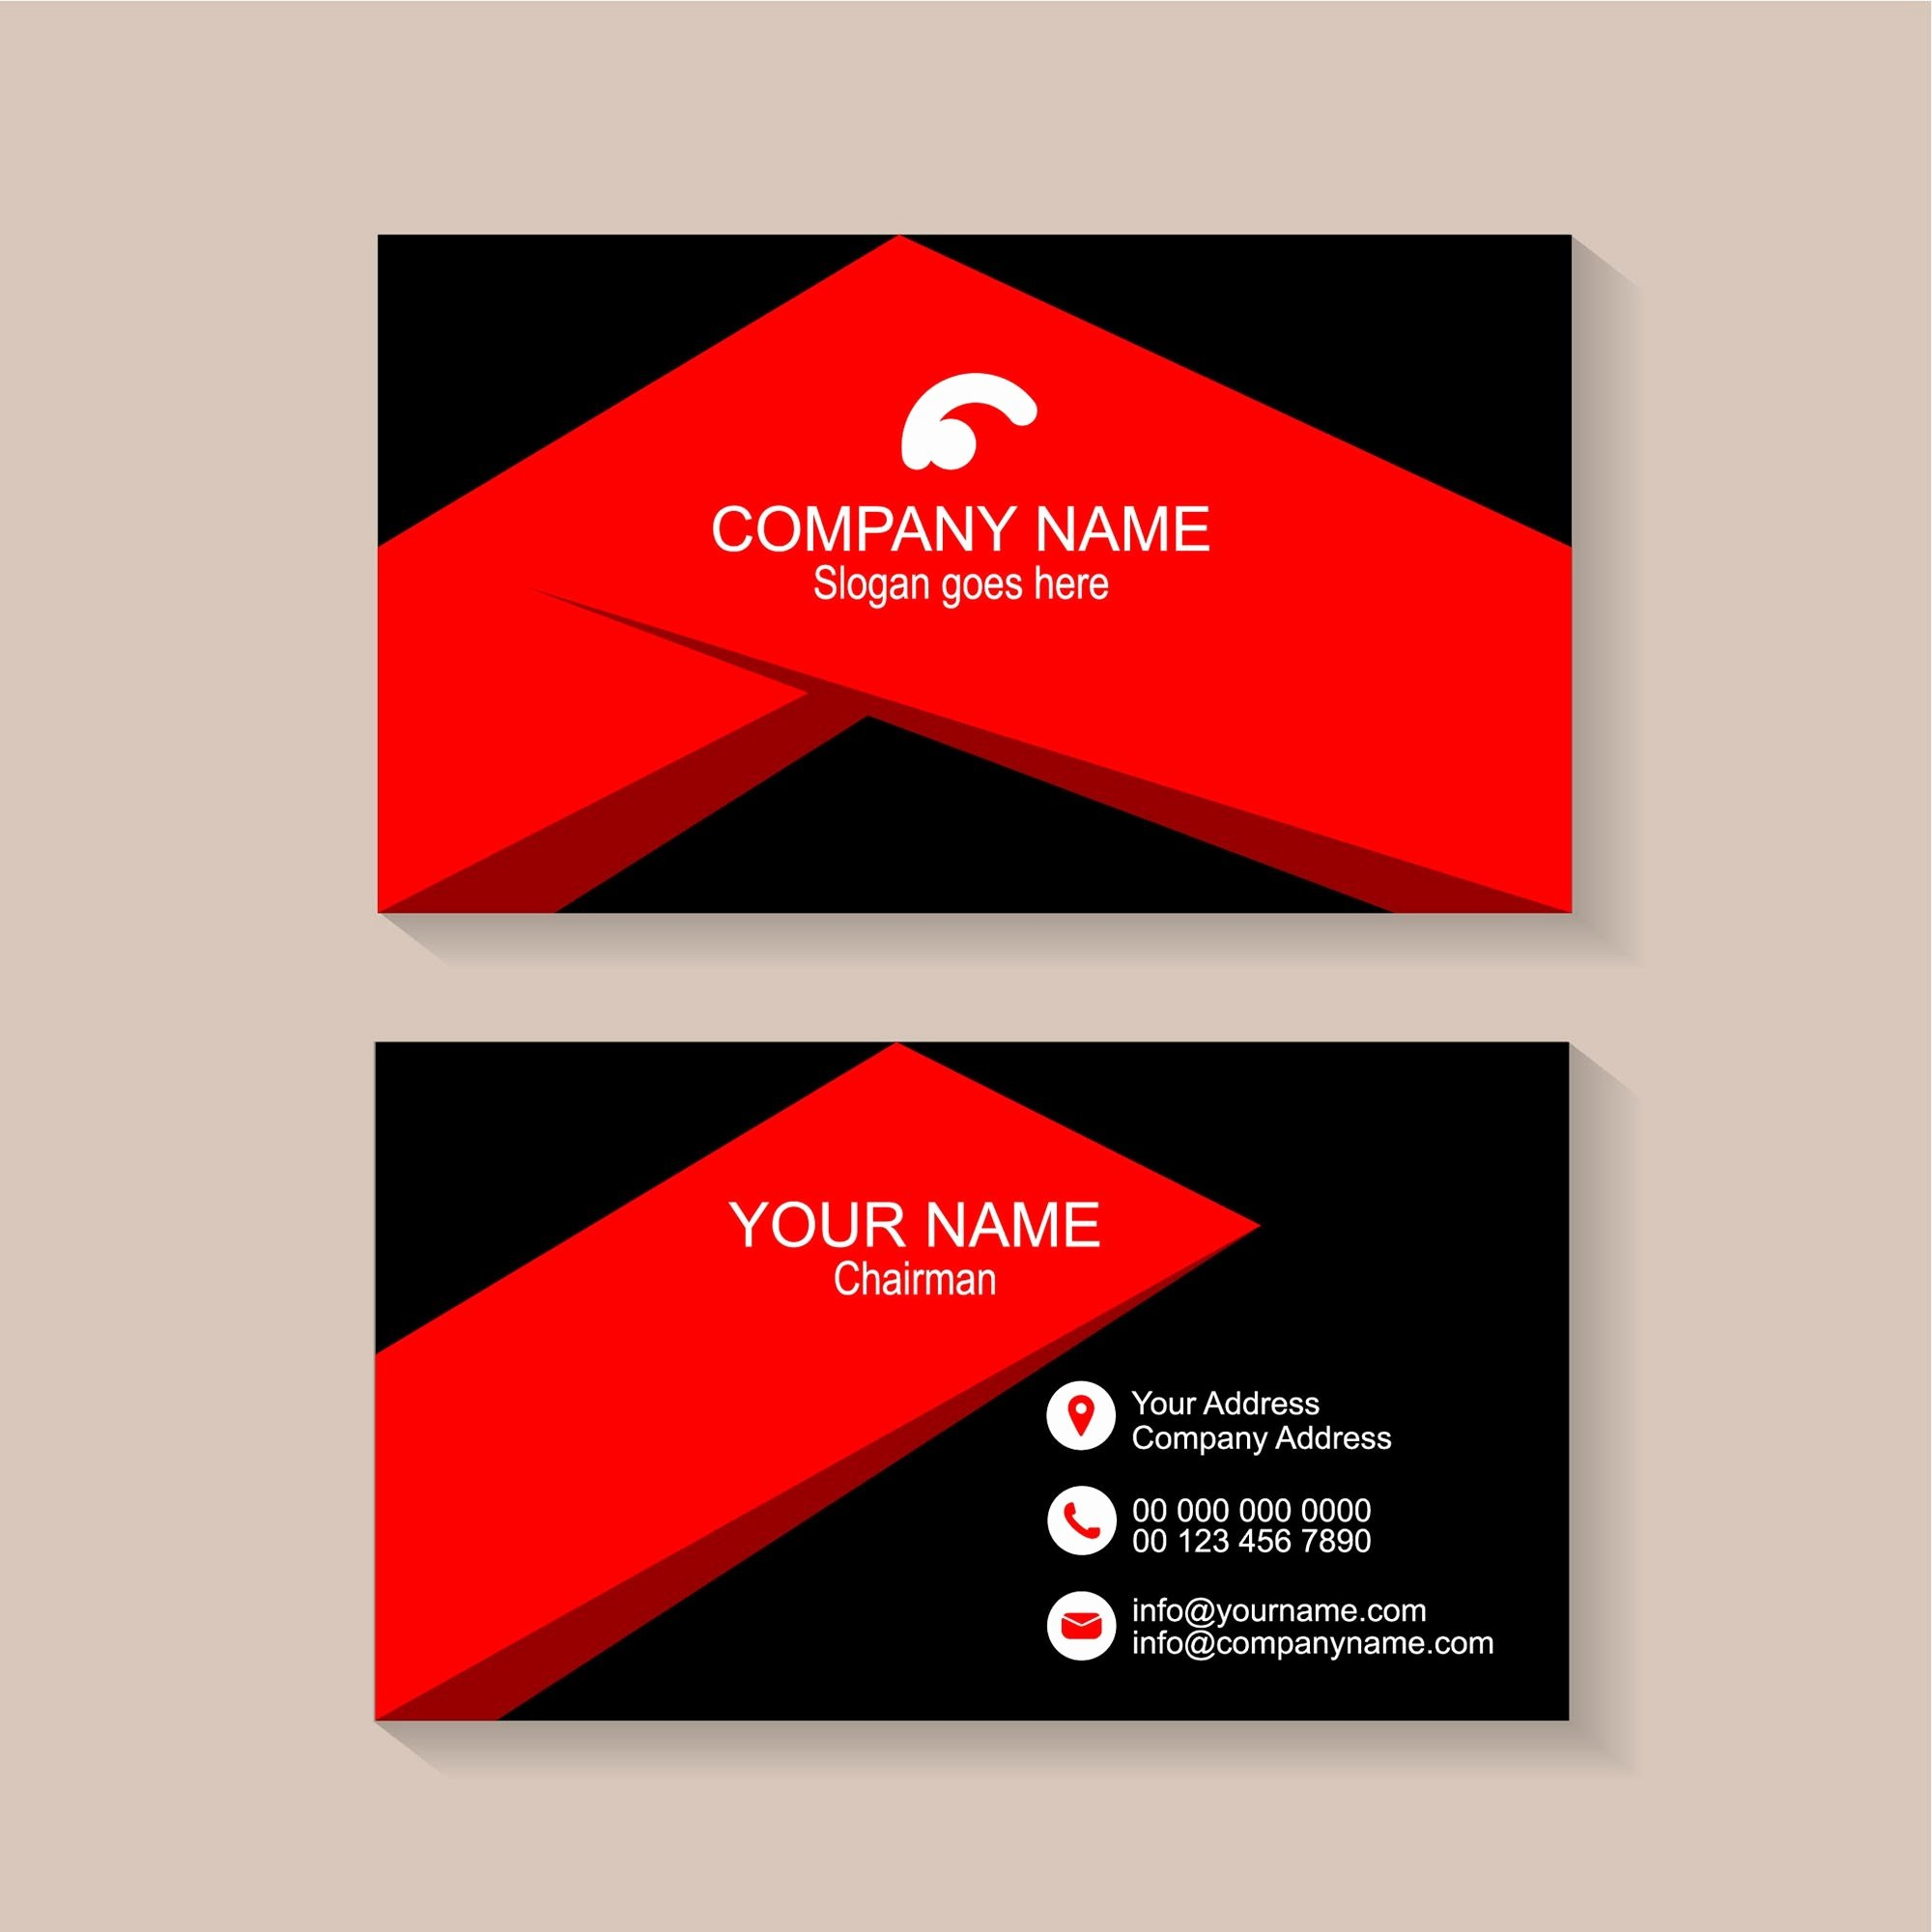 Round Business Card Template Unique Rounded Business Card Template